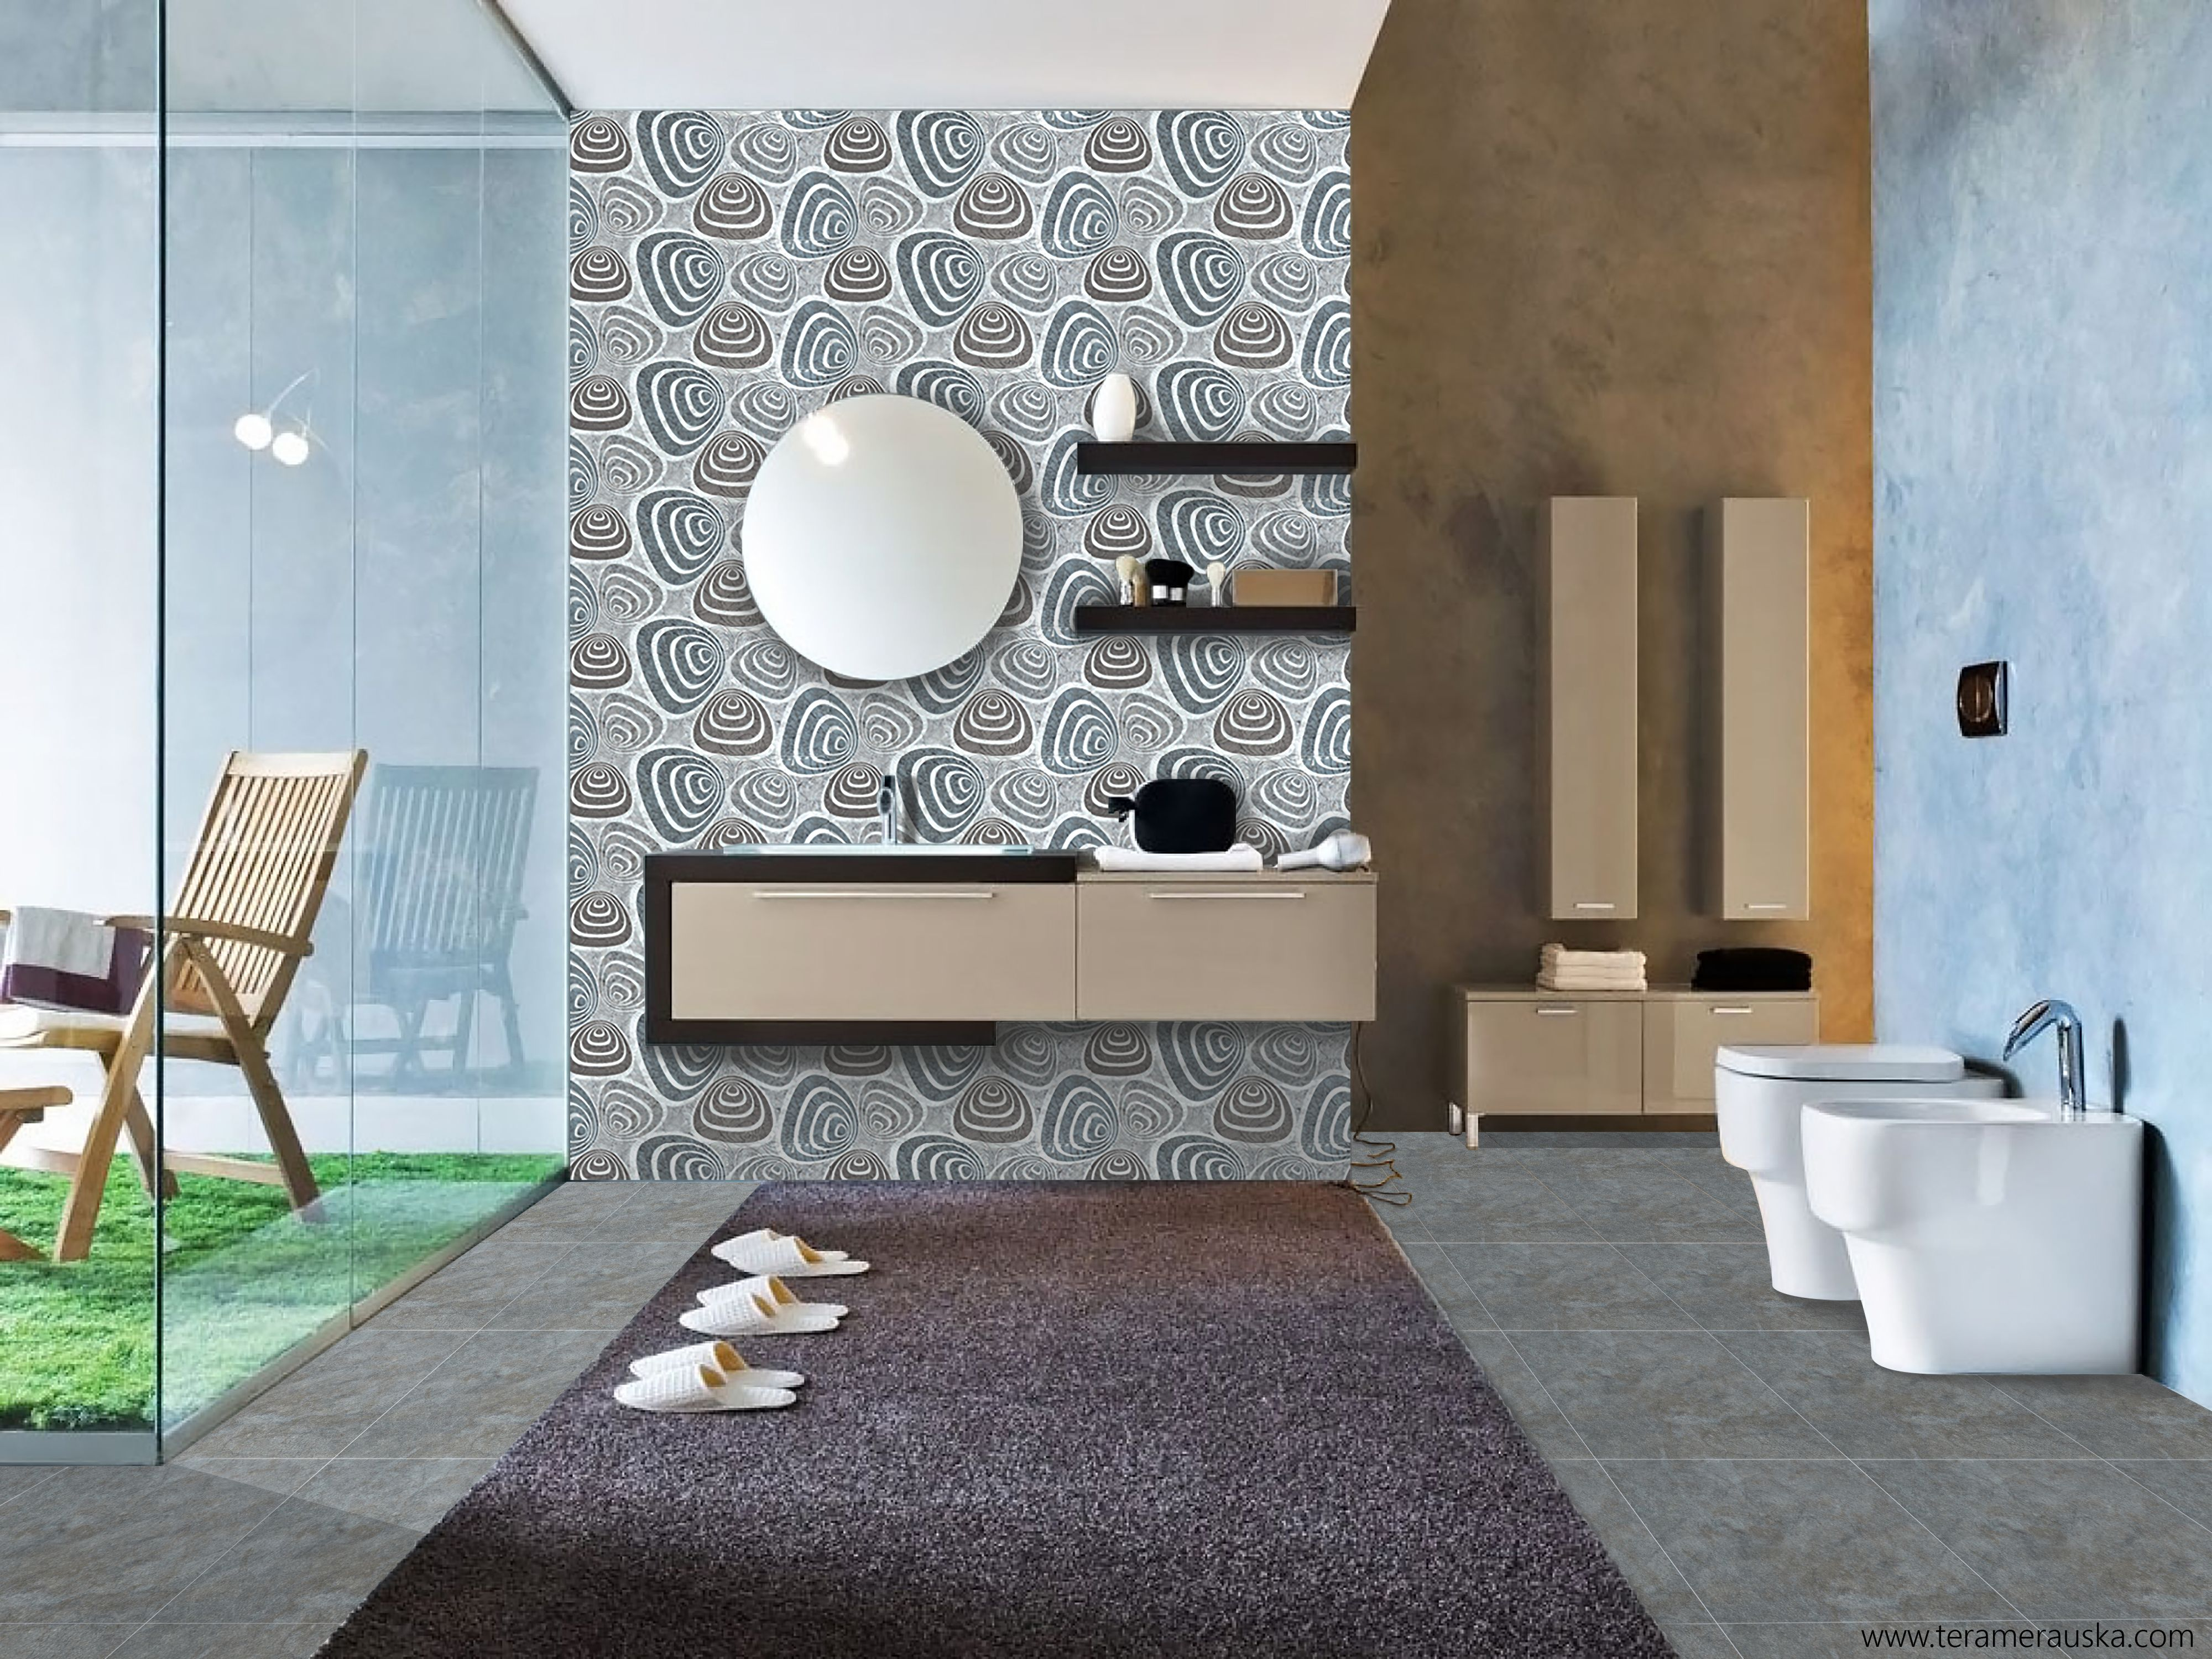 Ceramic Wall Tile India Find Ceramicwalltile To Create A Perfect Decoration 3rdfiredecorated Https